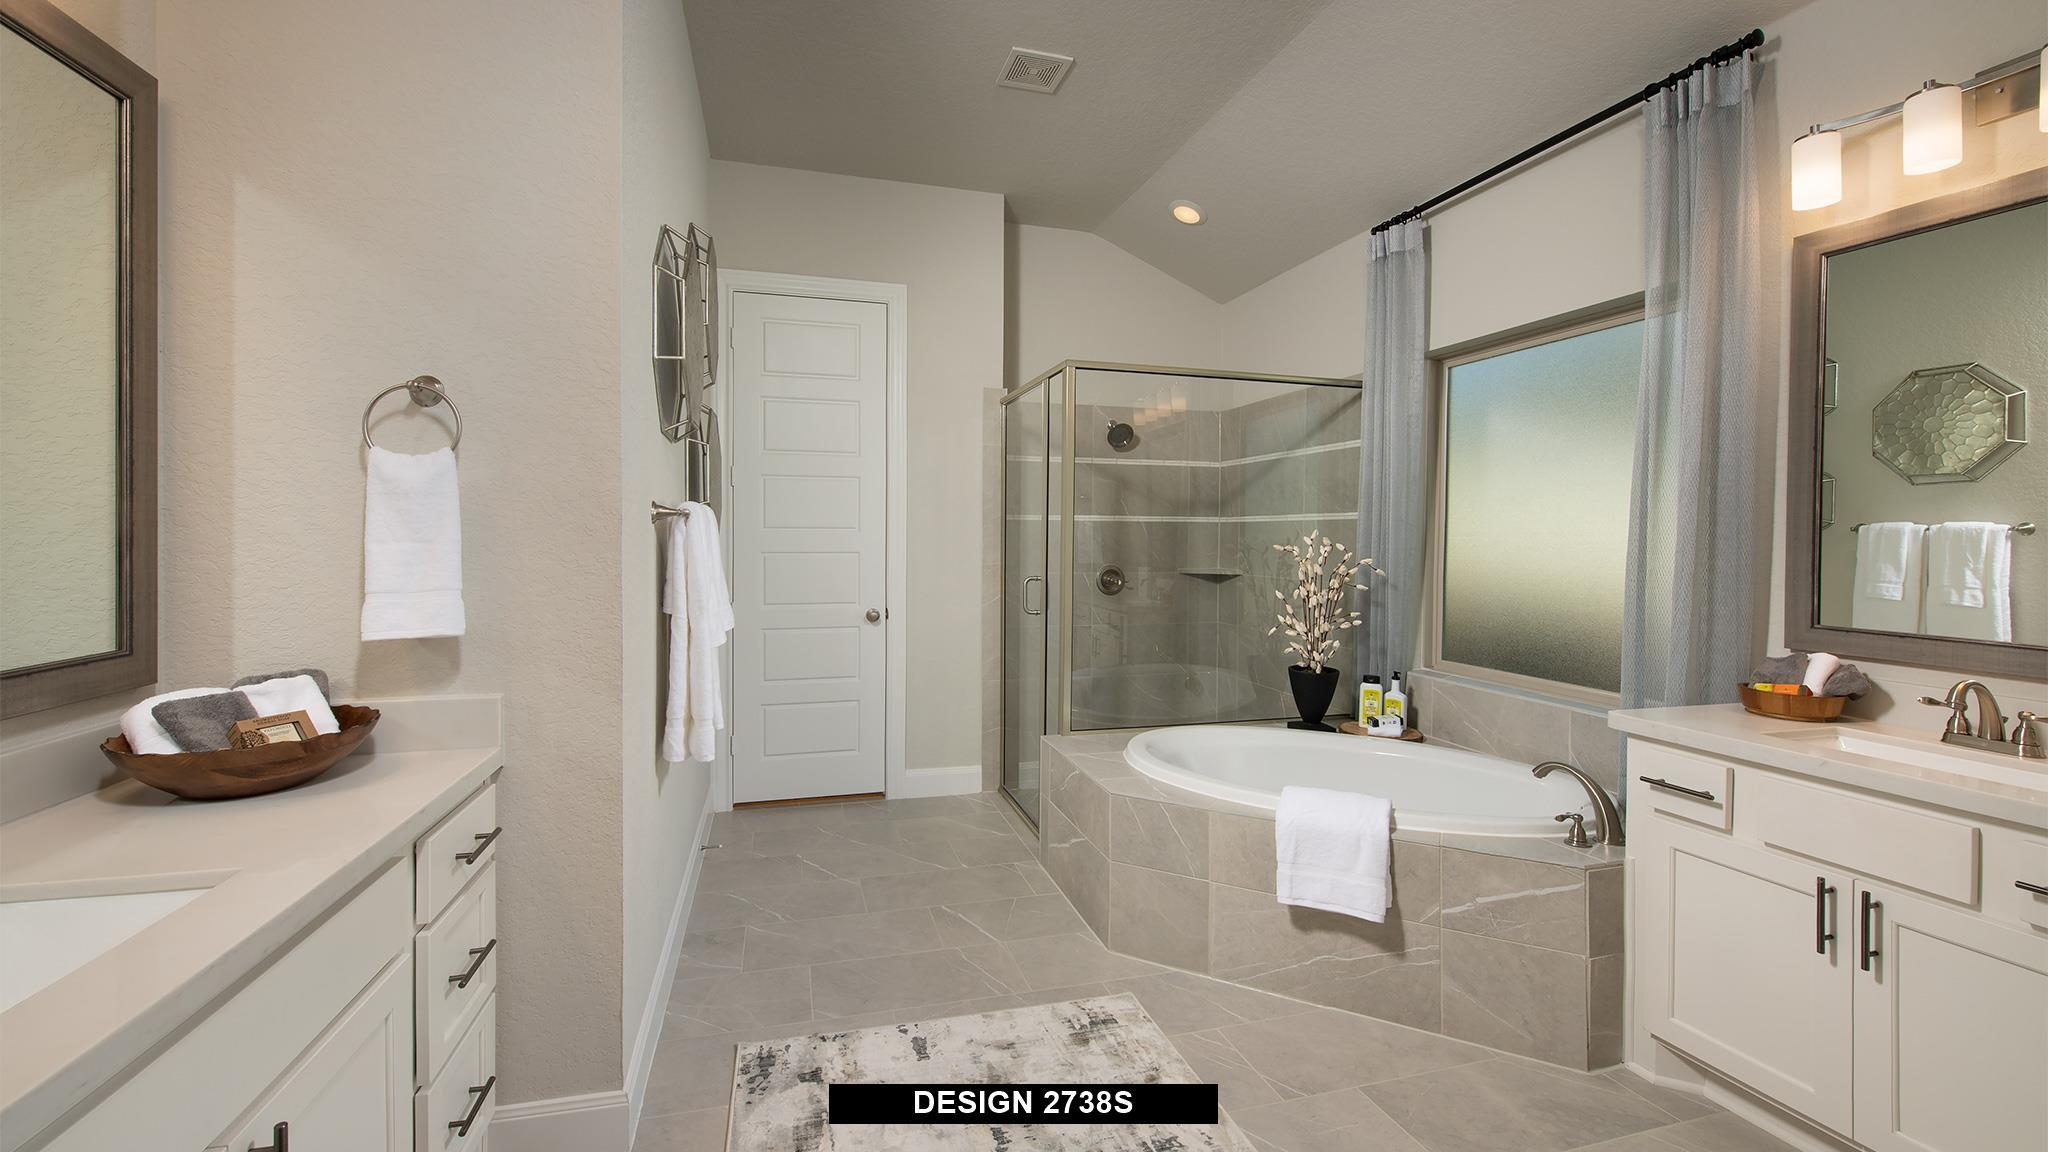 Bathroom featured in the 2738S By Perry Homes in Austin, TX